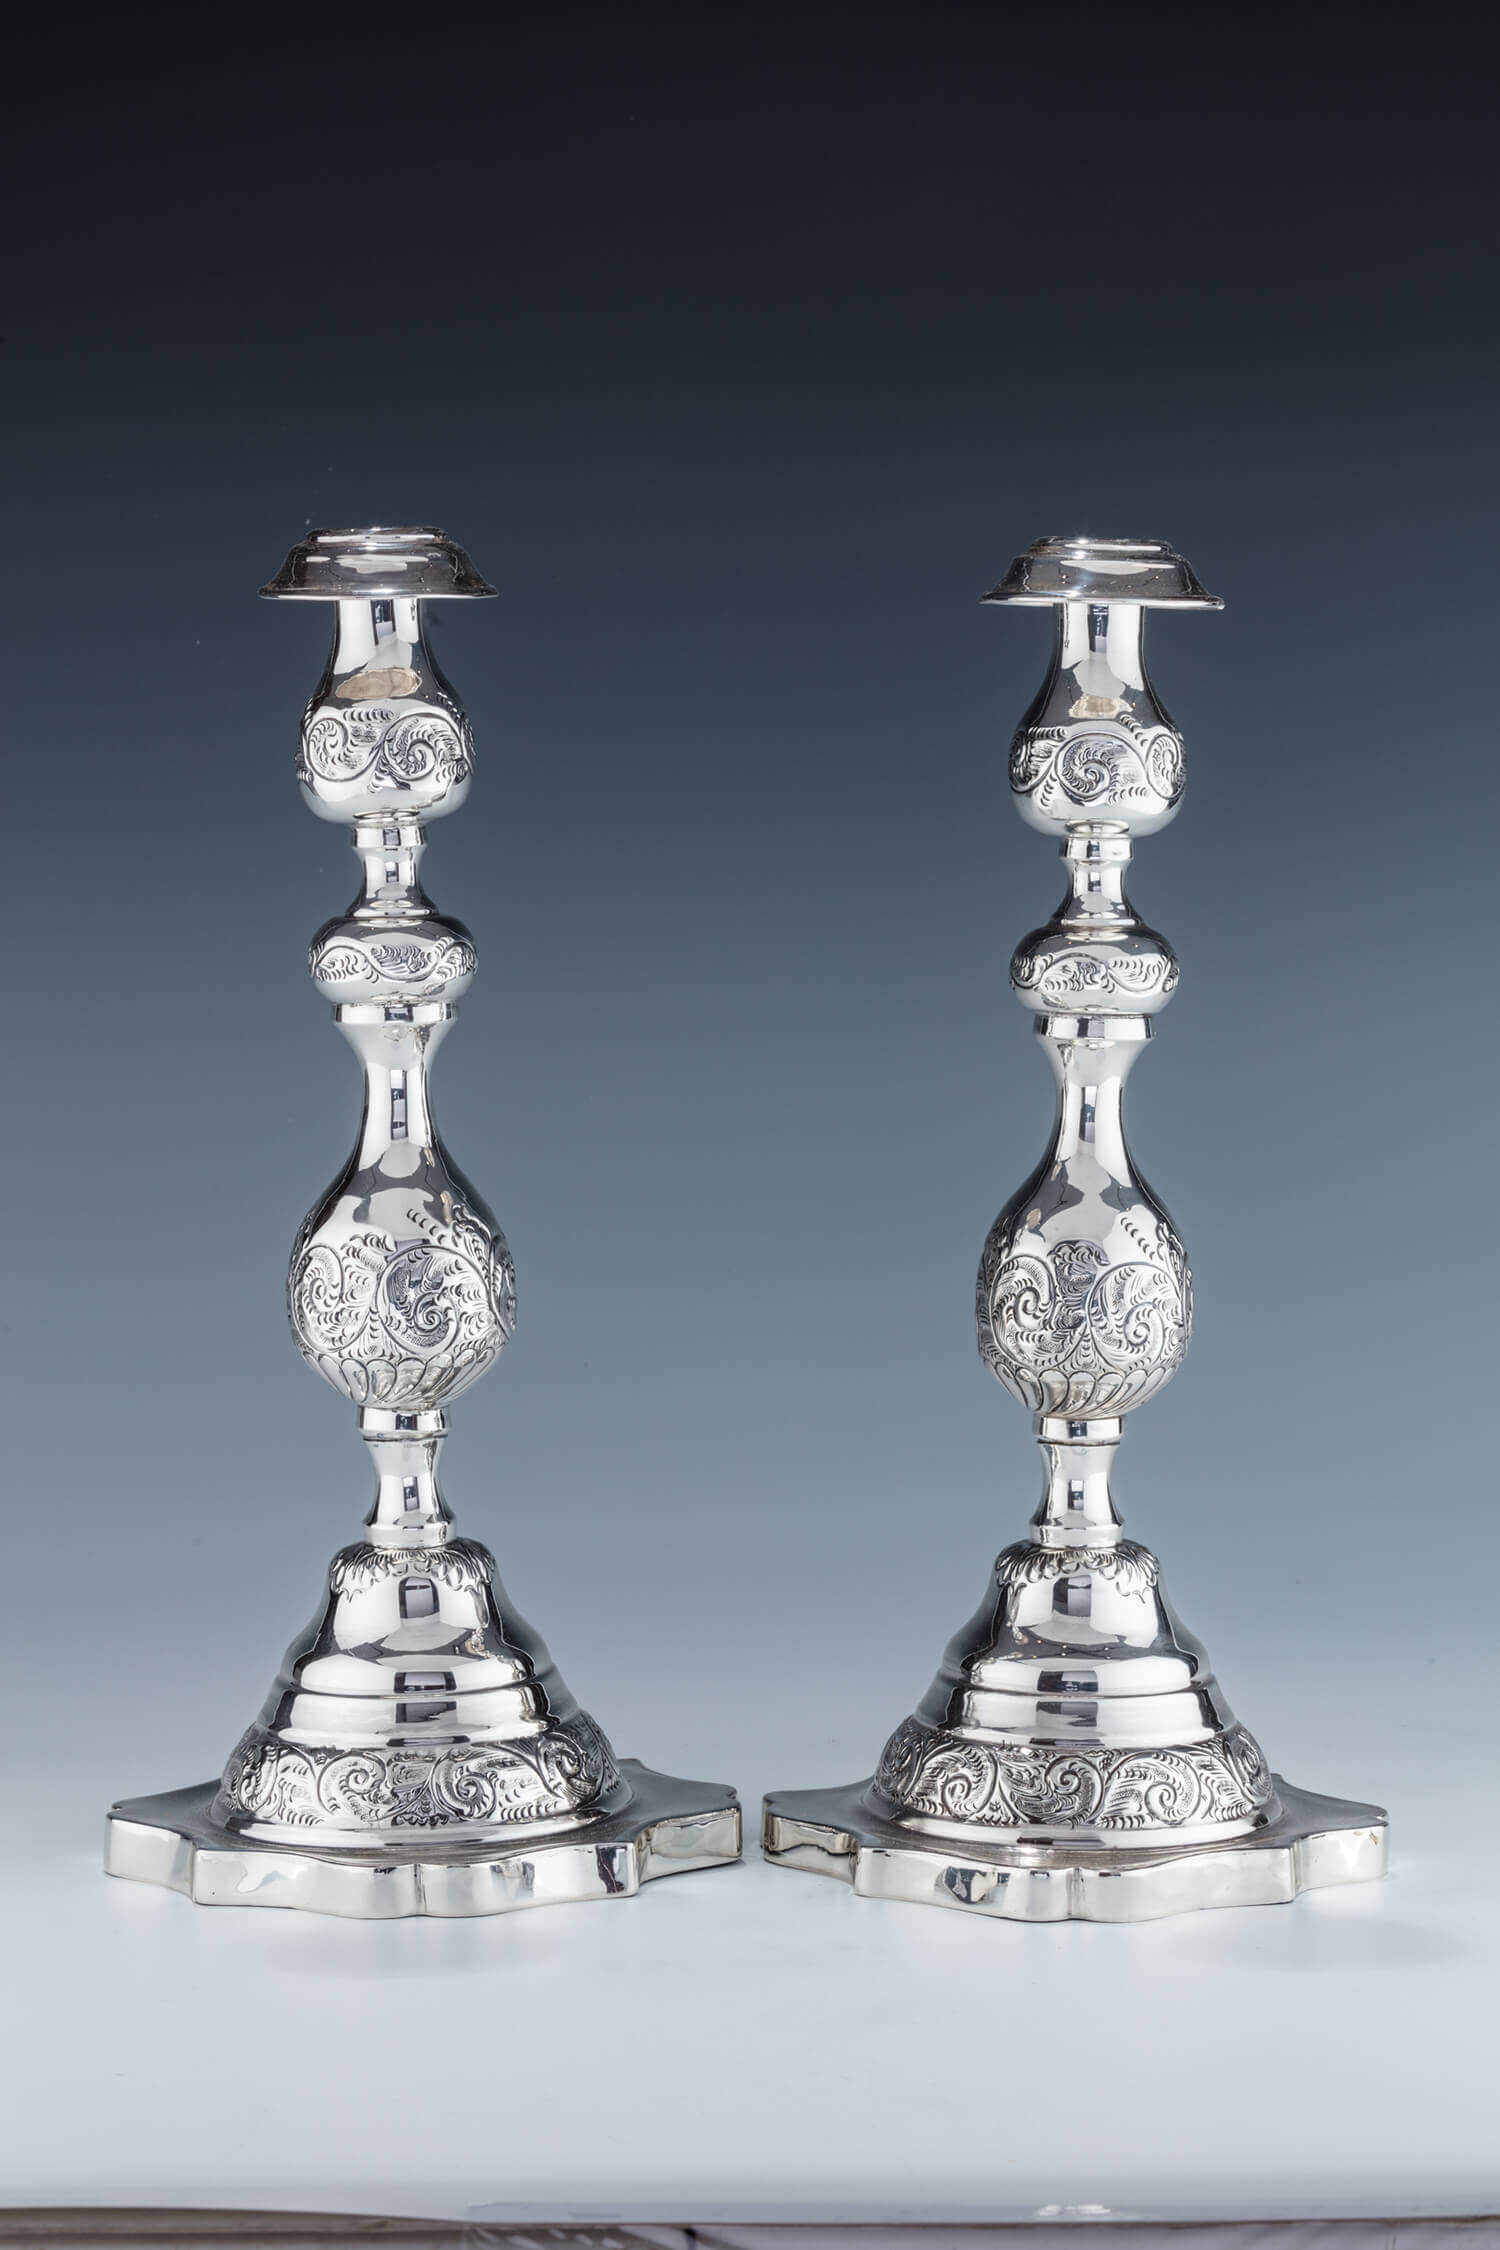 024. A MONUMENTAL PAIR OF STERLING SILVER SABBATH CANDLESTICKS BY MOSHE RUBIN